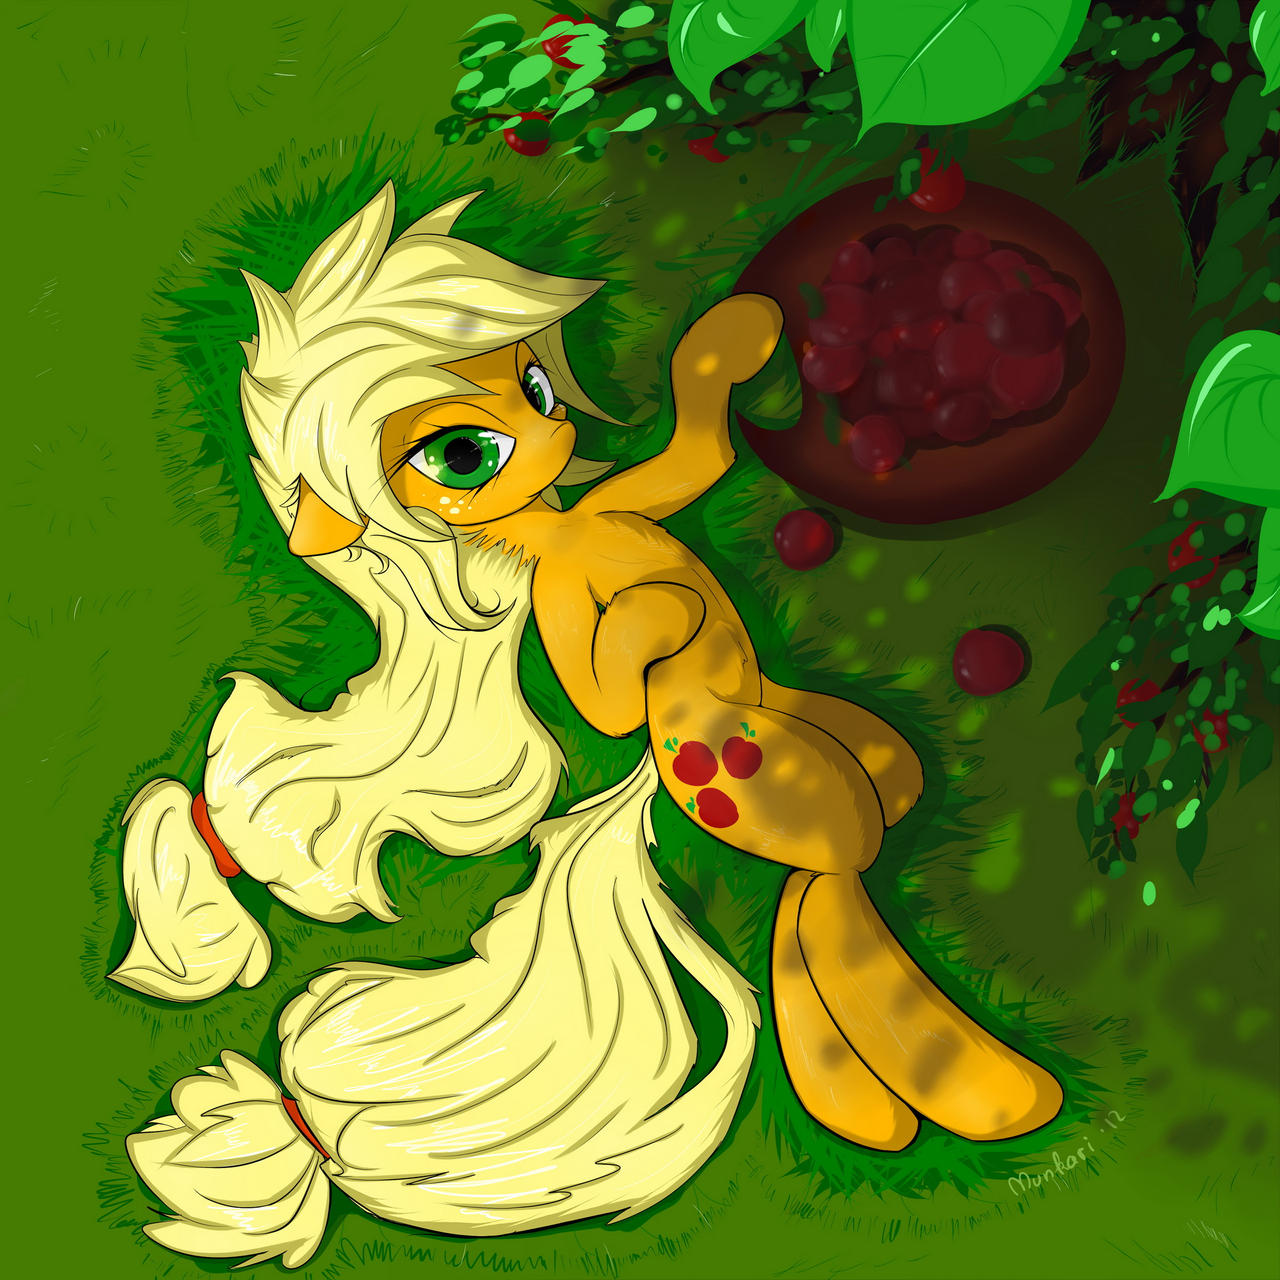 Apples by Munkari